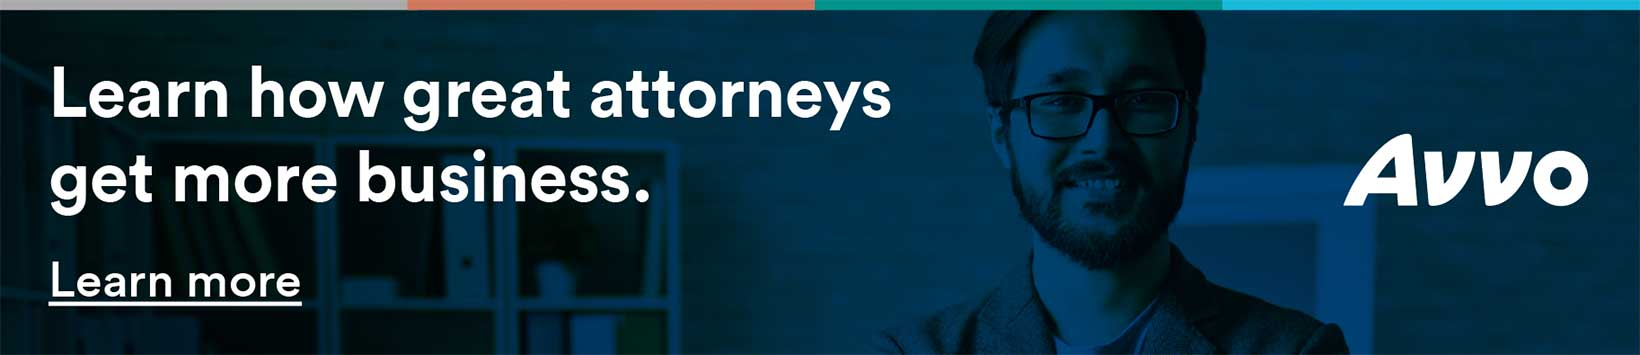 Learn how great attorneys get more business.